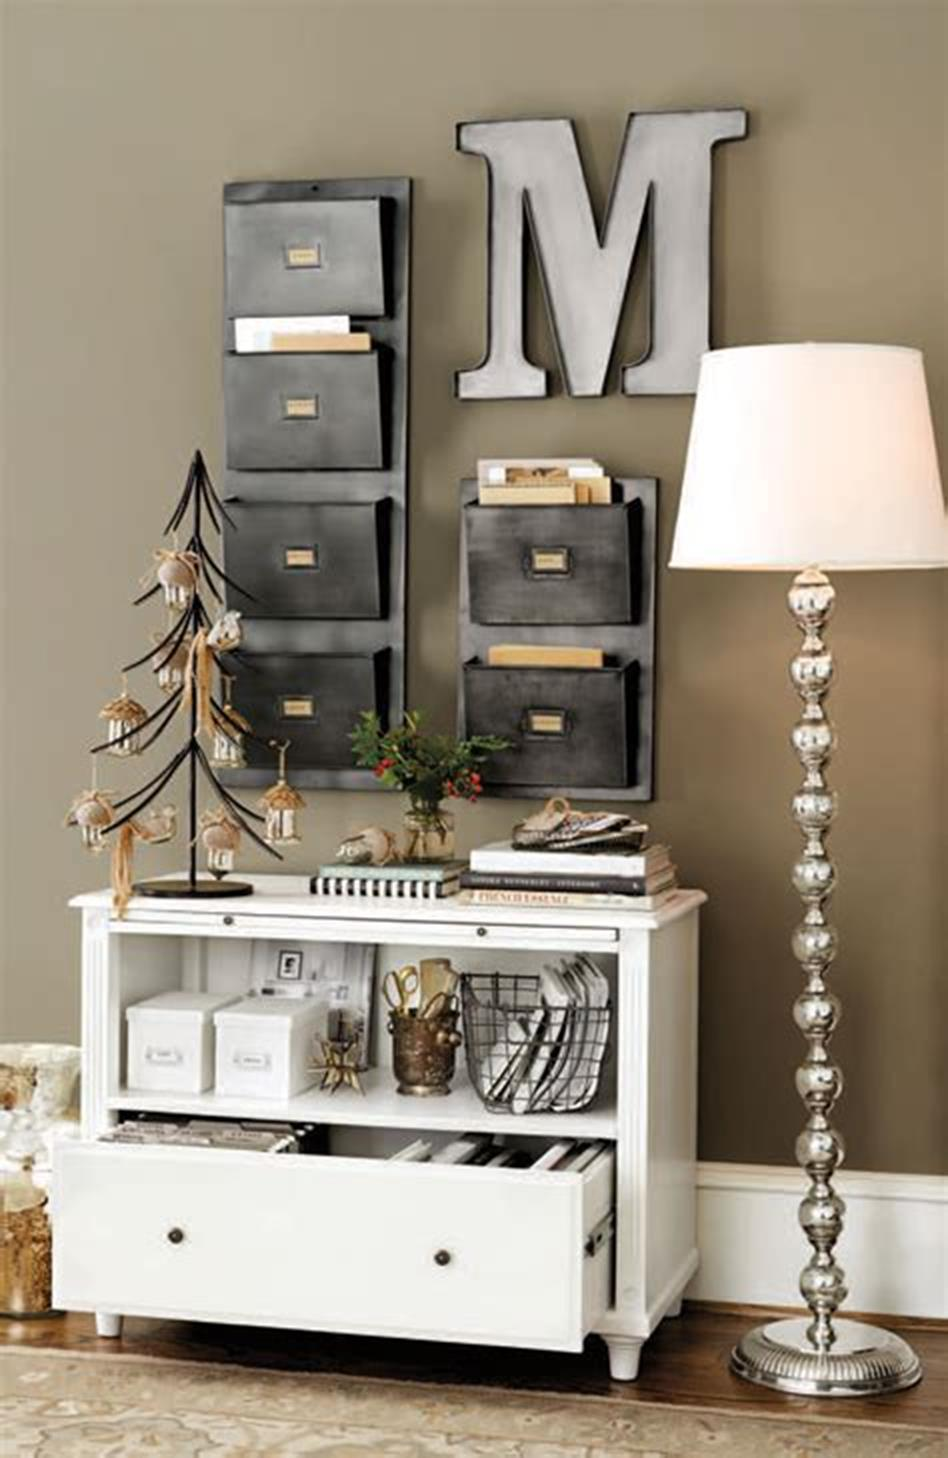 50 Best Small Space Office Decorating Ideas On A Budget 2019 32